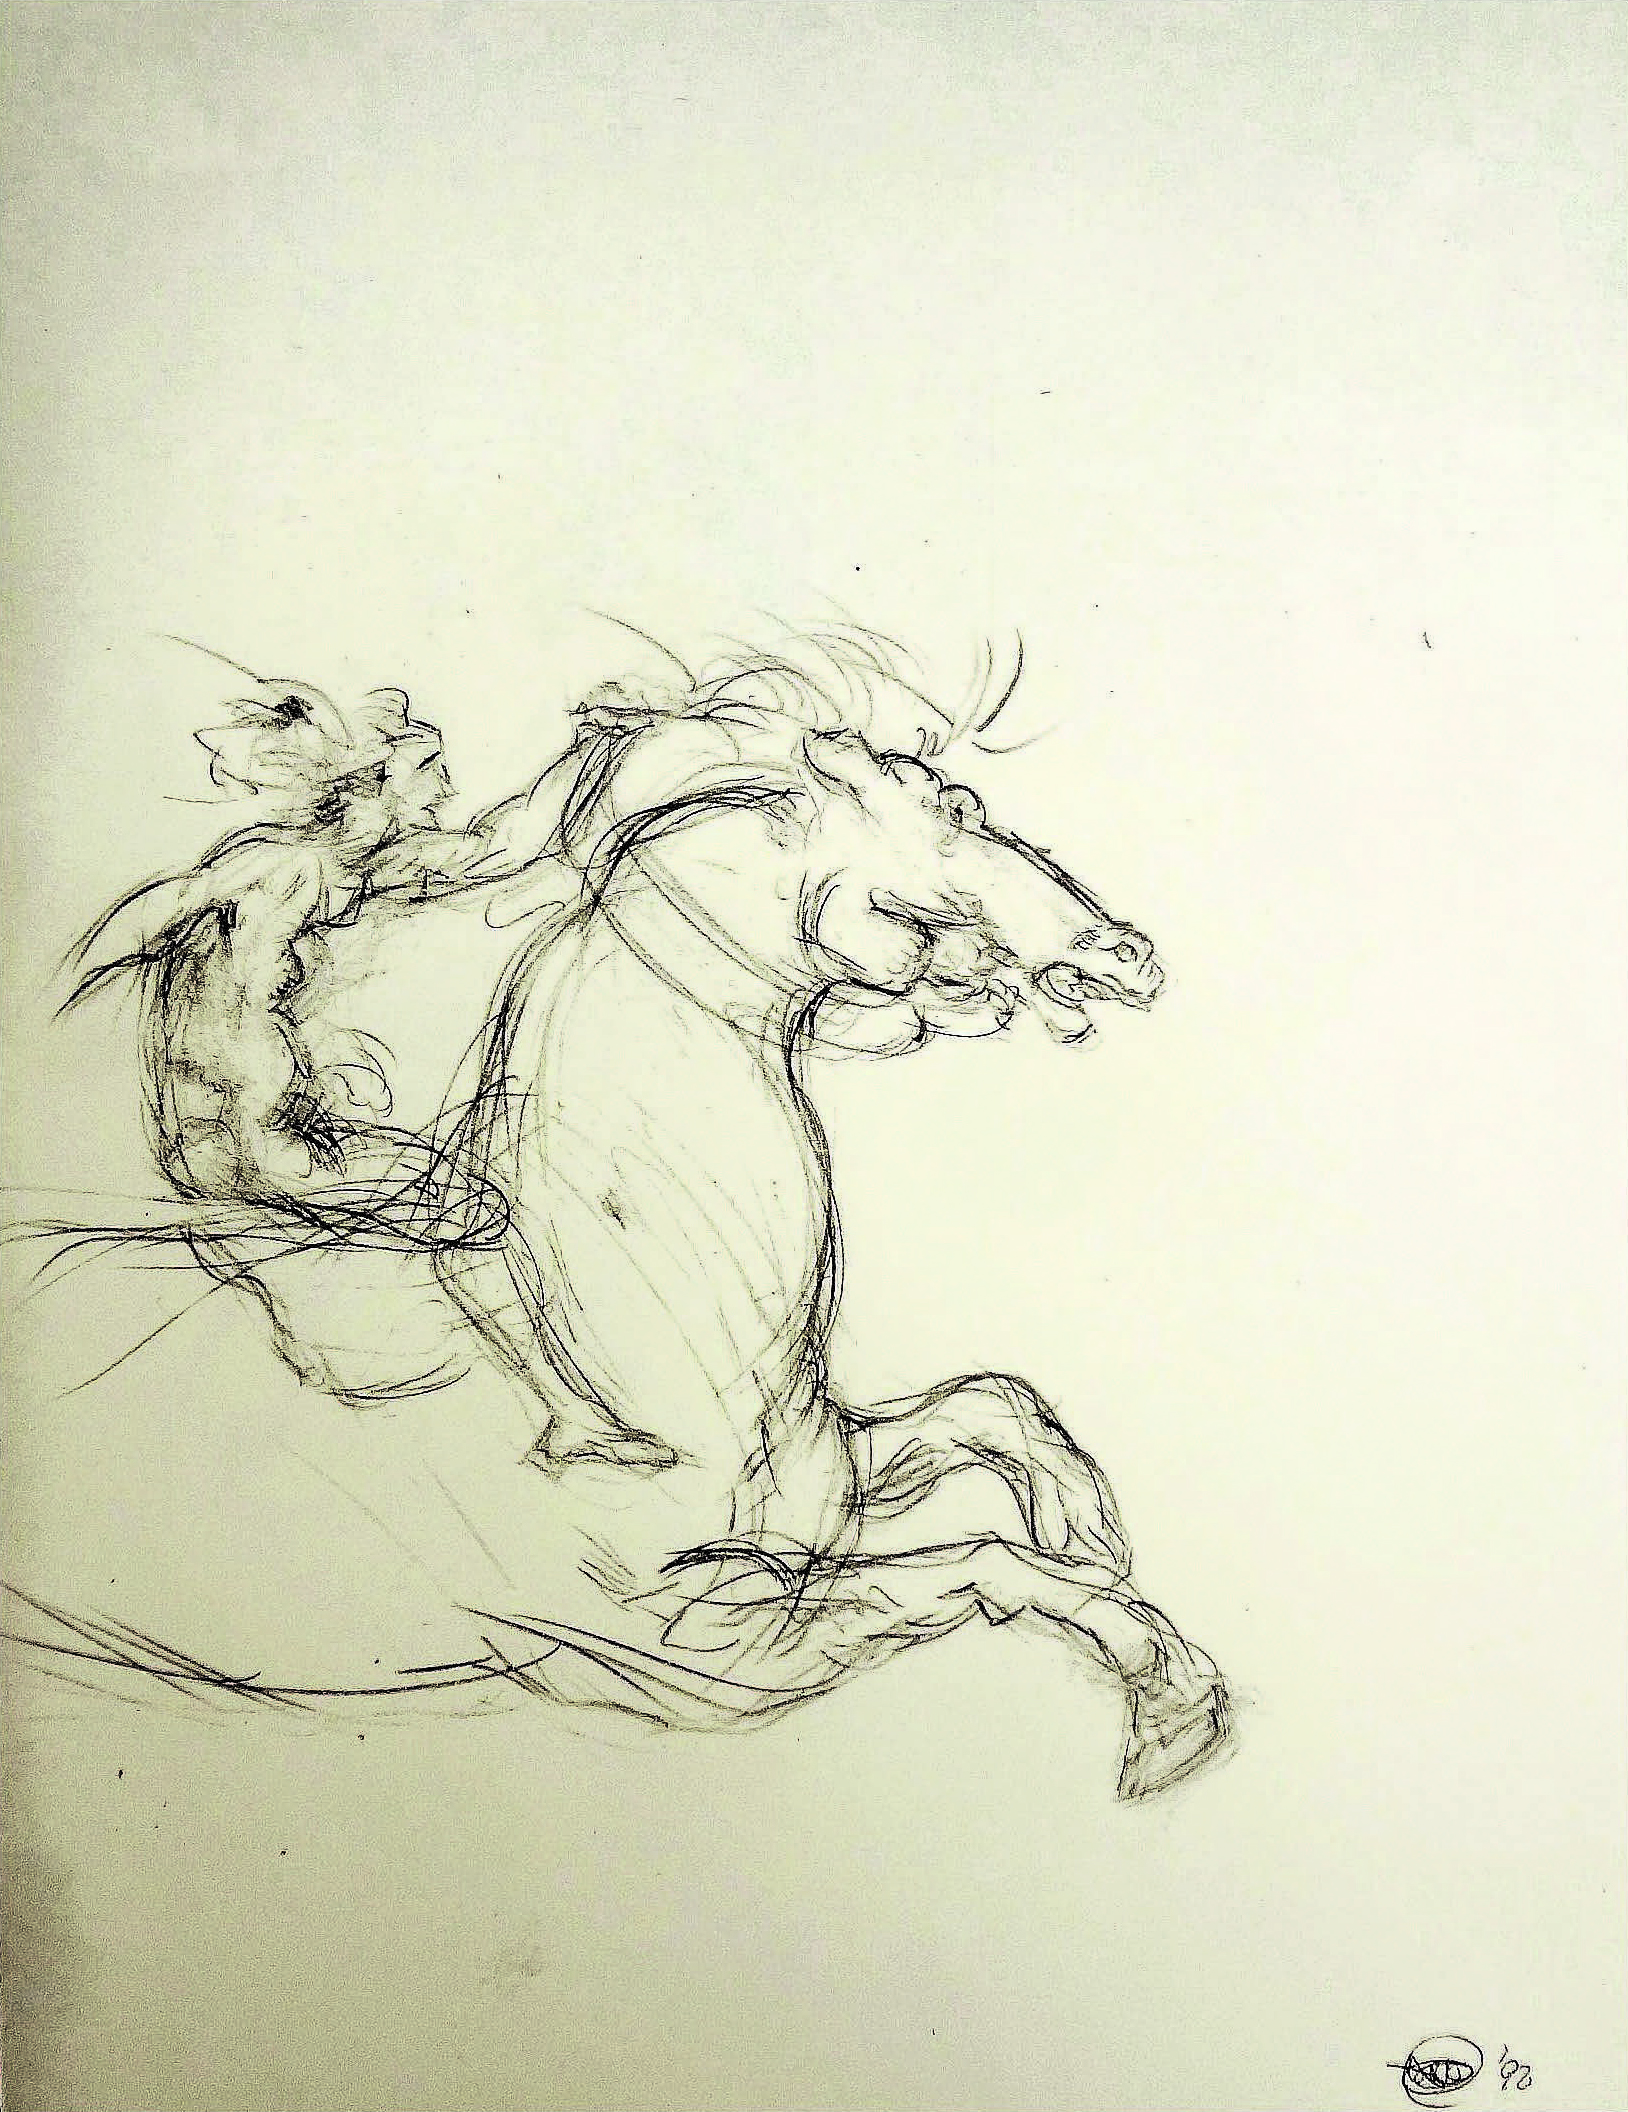 After daVinci - The Equestrian Warrior (1452-1510 ) , 1992  Pencil on paper  11 × 13 1/2 in   Inquire